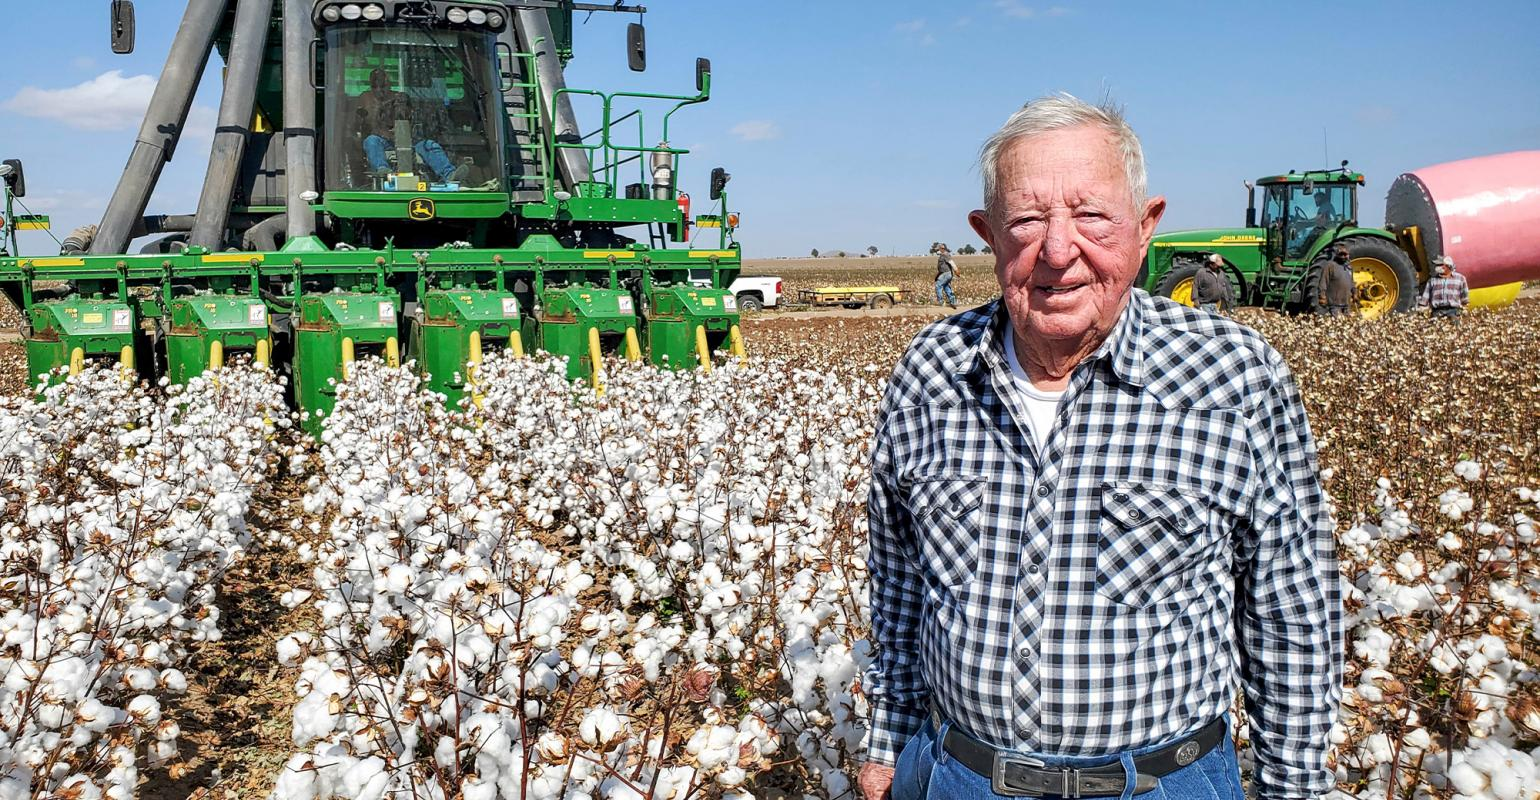 Robbins named 2021 High Cotton winner for the Southwest